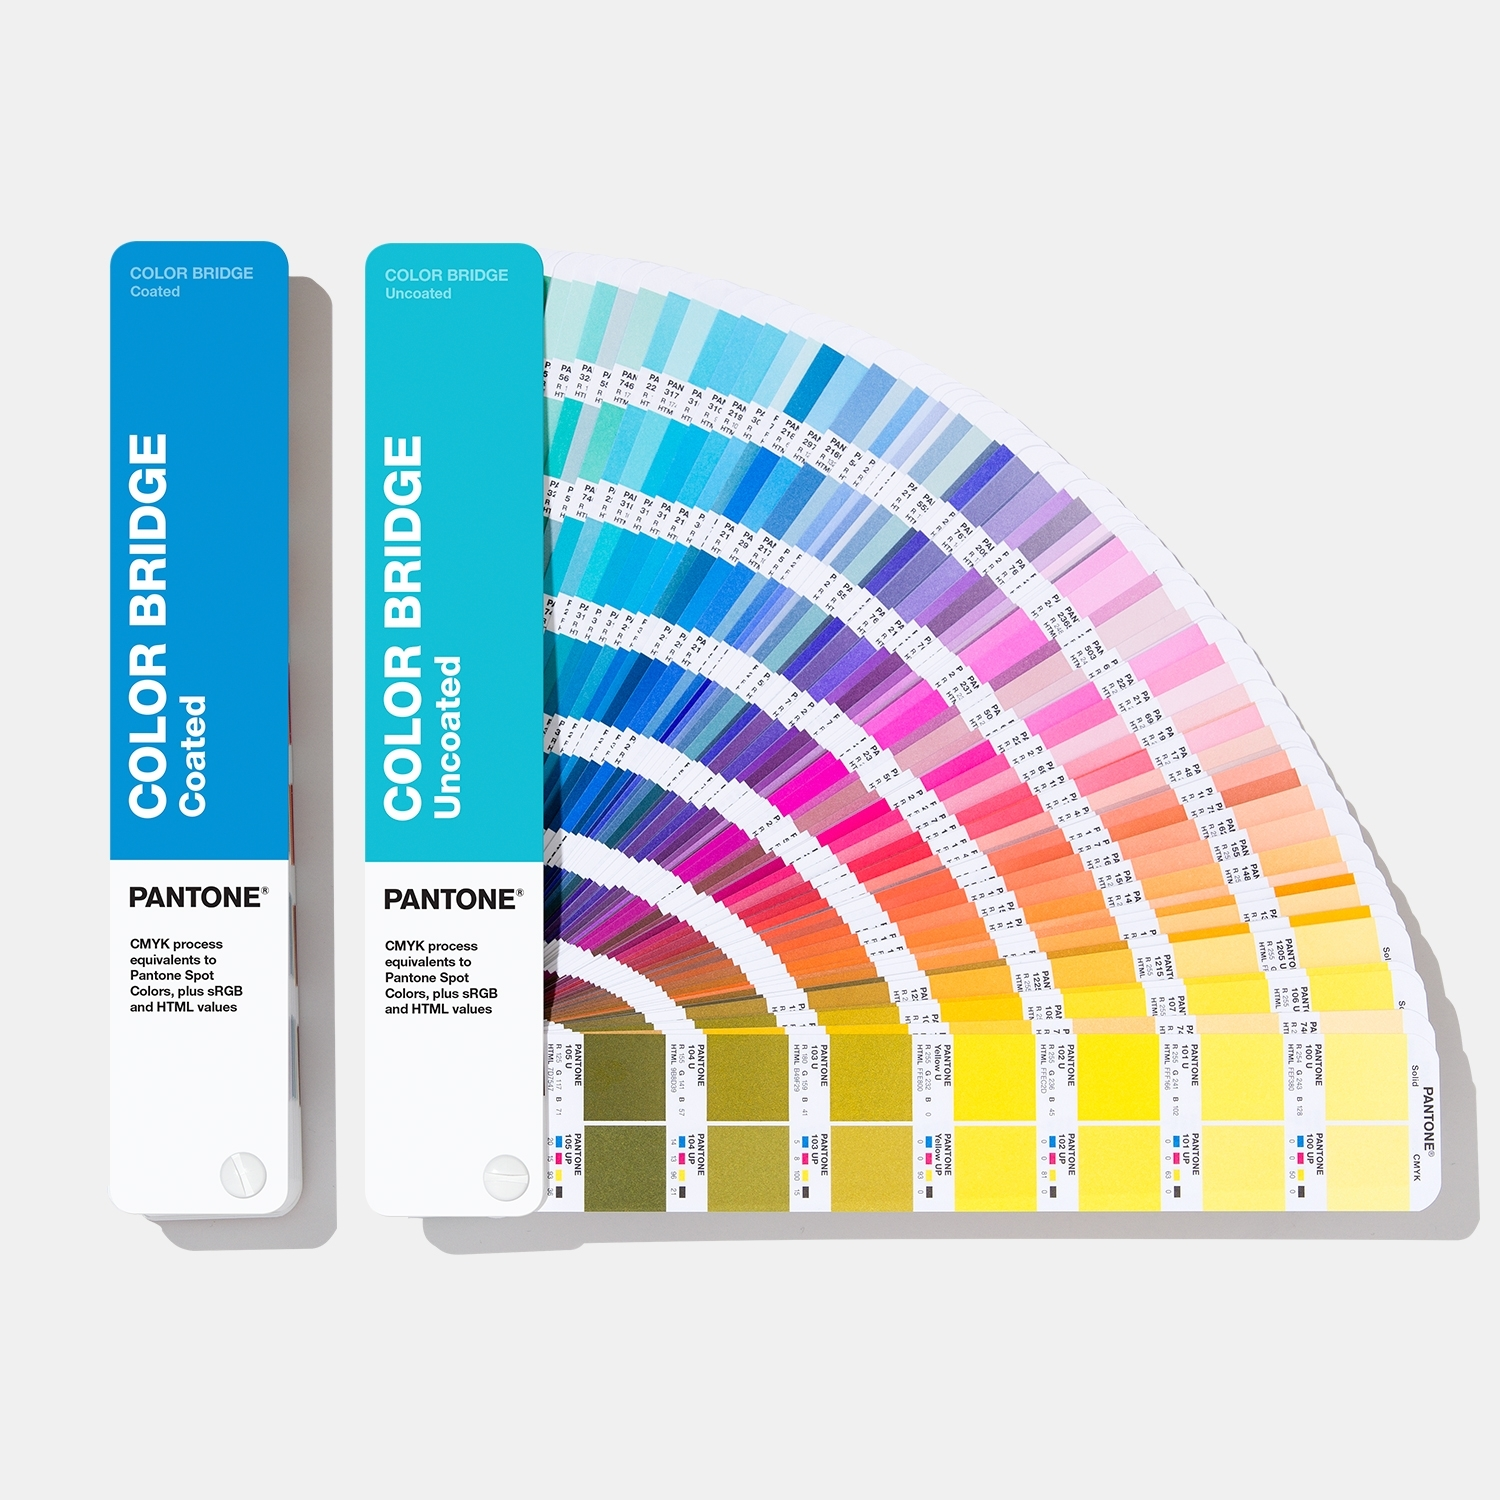 Pantone color bridge uncoated color inspiration for Where to buy pantone paint